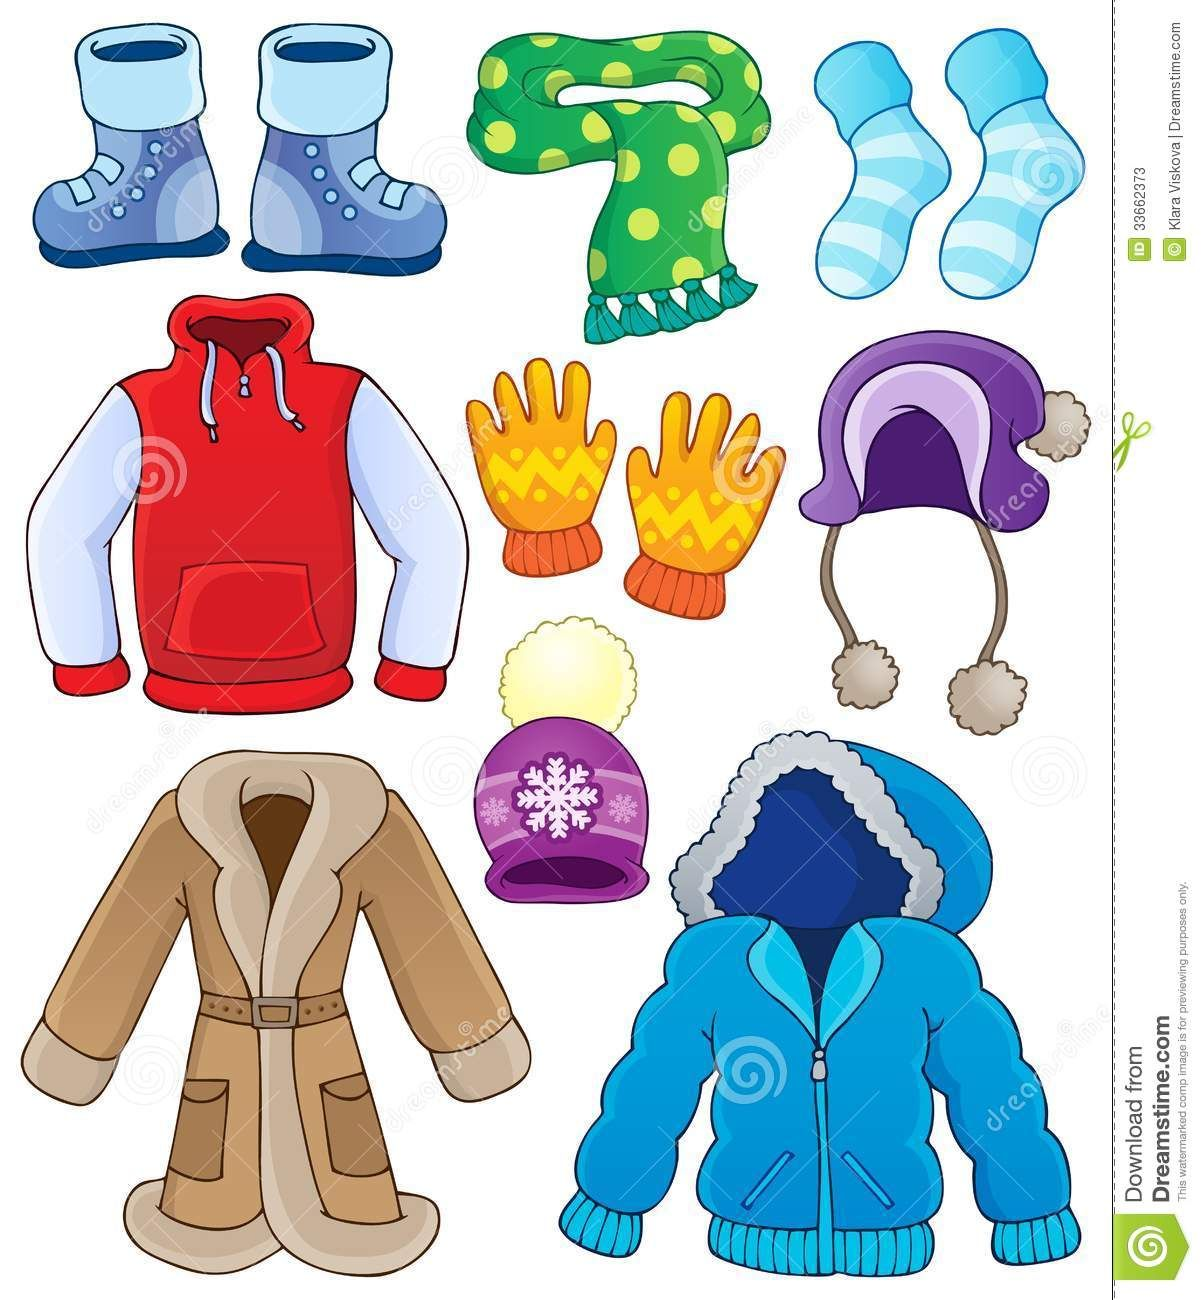 clipart winter clothing - photo #1